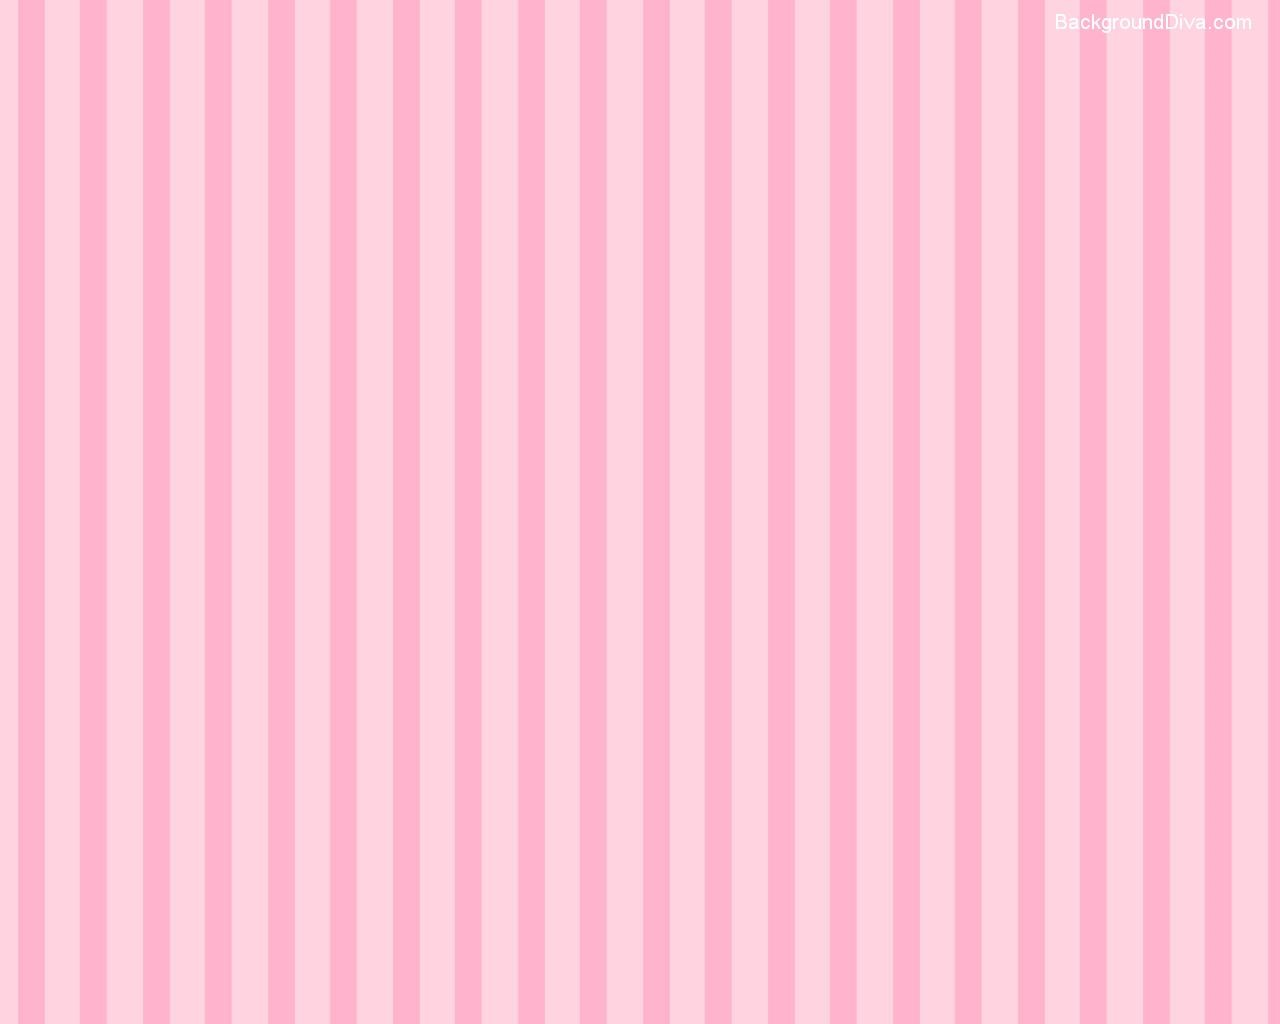 Pink And Blue Striped Wallpaper 2989 Wallpaper: Download Pink And White Striped Wallpaper Gallery